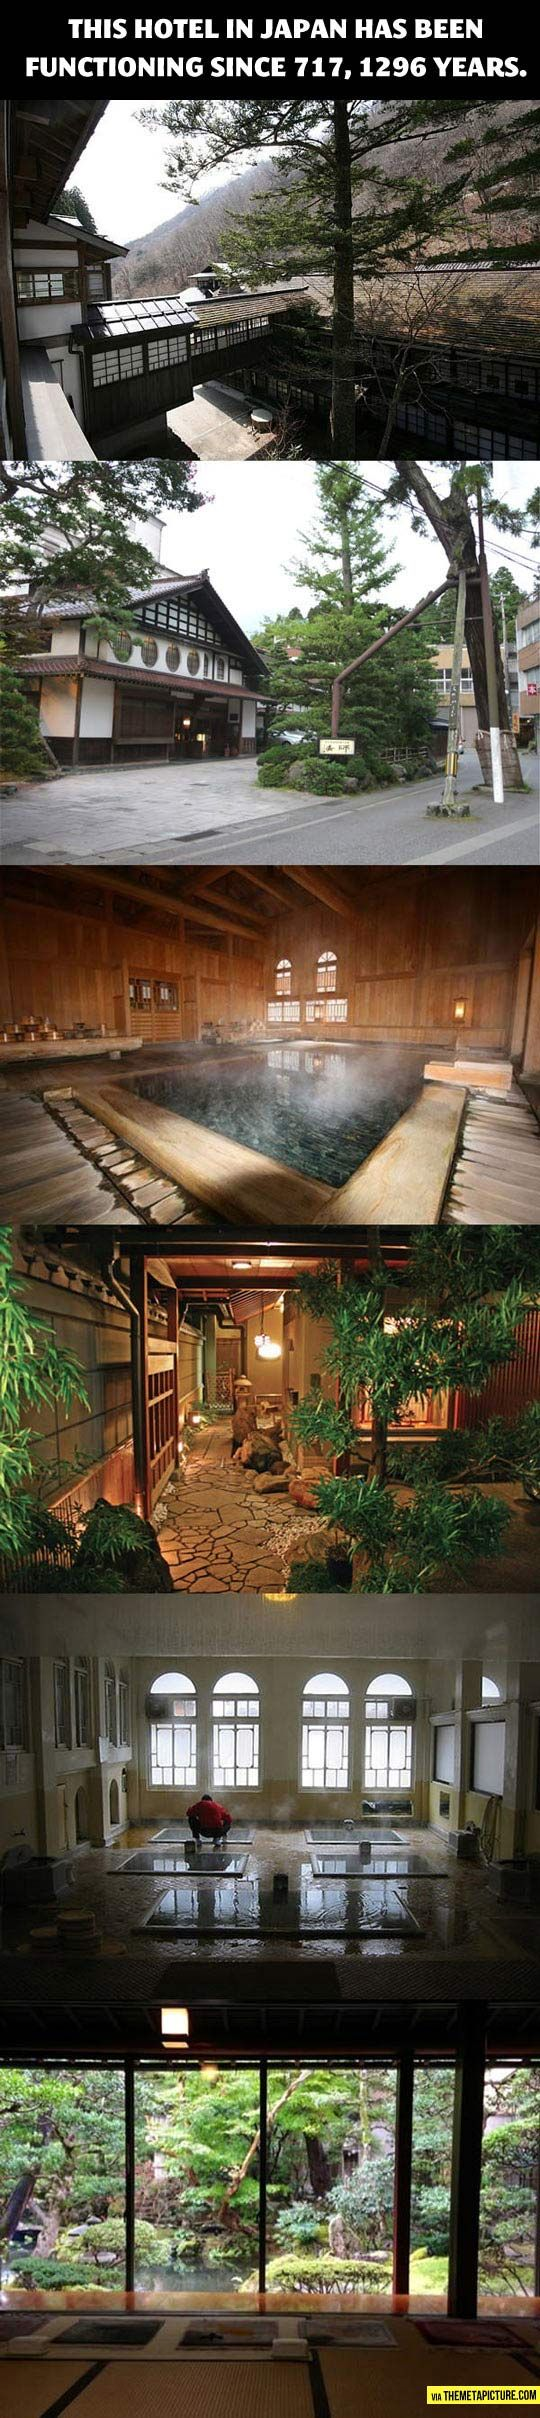 Hoshi Ryokan in Komatsu, Ishikawa, Japan: A hotel that has been functioning for 1296 years... I so so want to see this one day!!♡♡♡